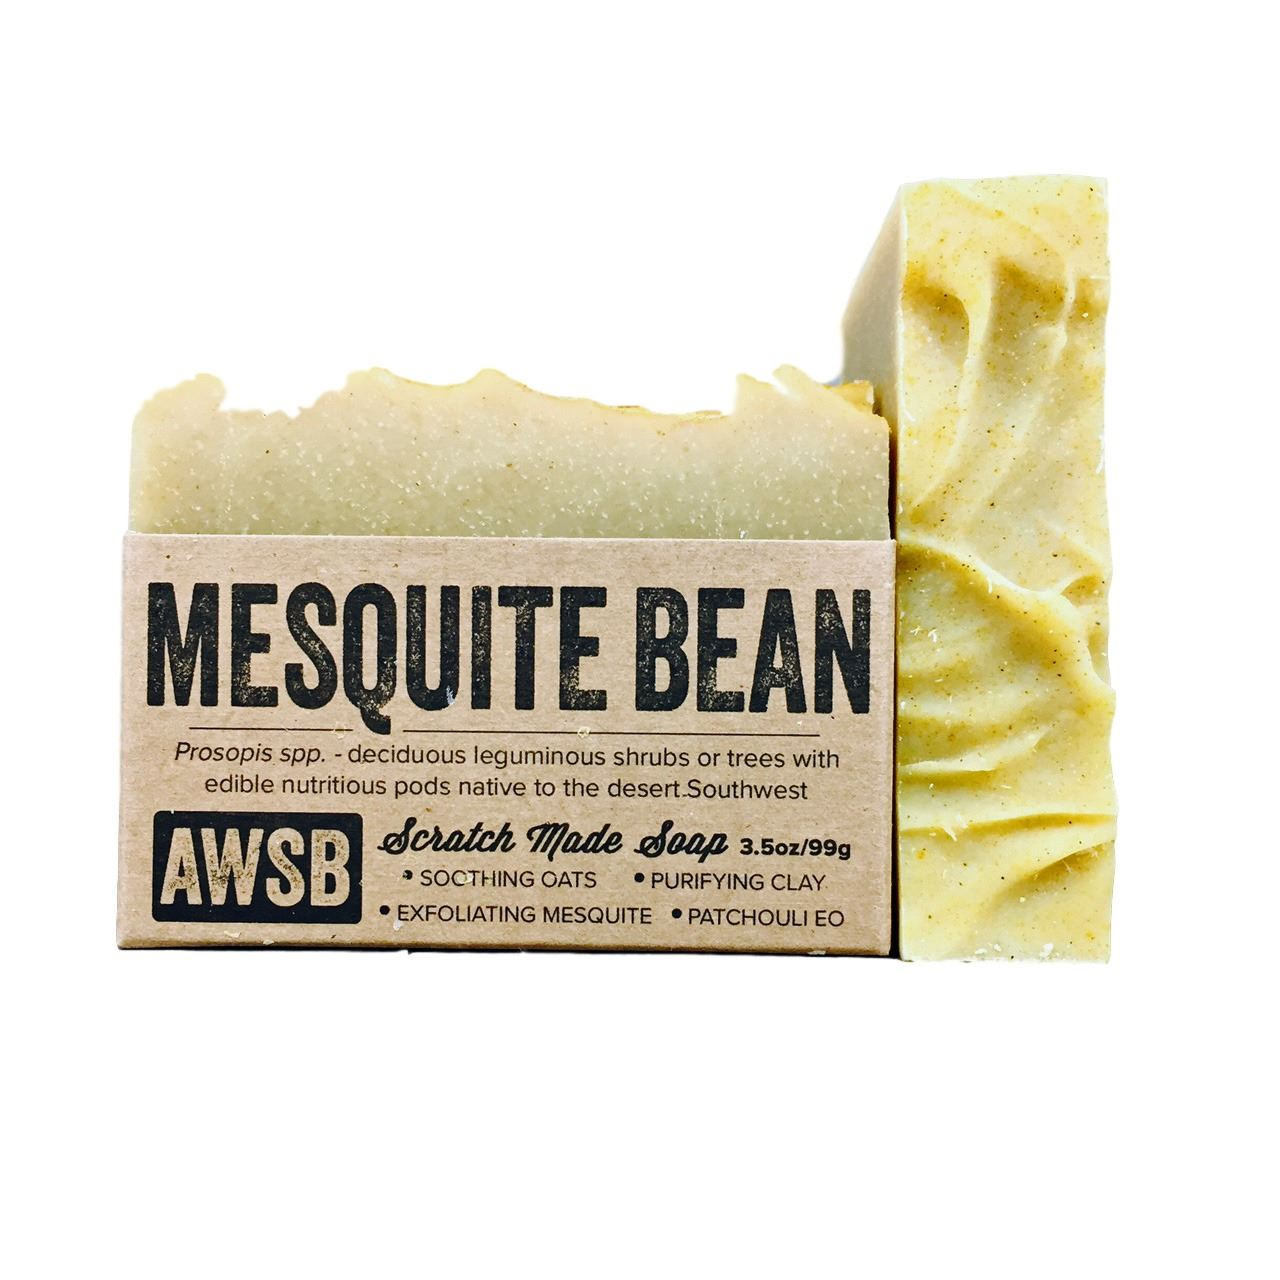 mesquite bean soap mesquite,mesquite bean,natural,handmade,organic,soap,patchouli,ylang ylang,exfoliating,sensuous,earthy,essential oil,oats,wild